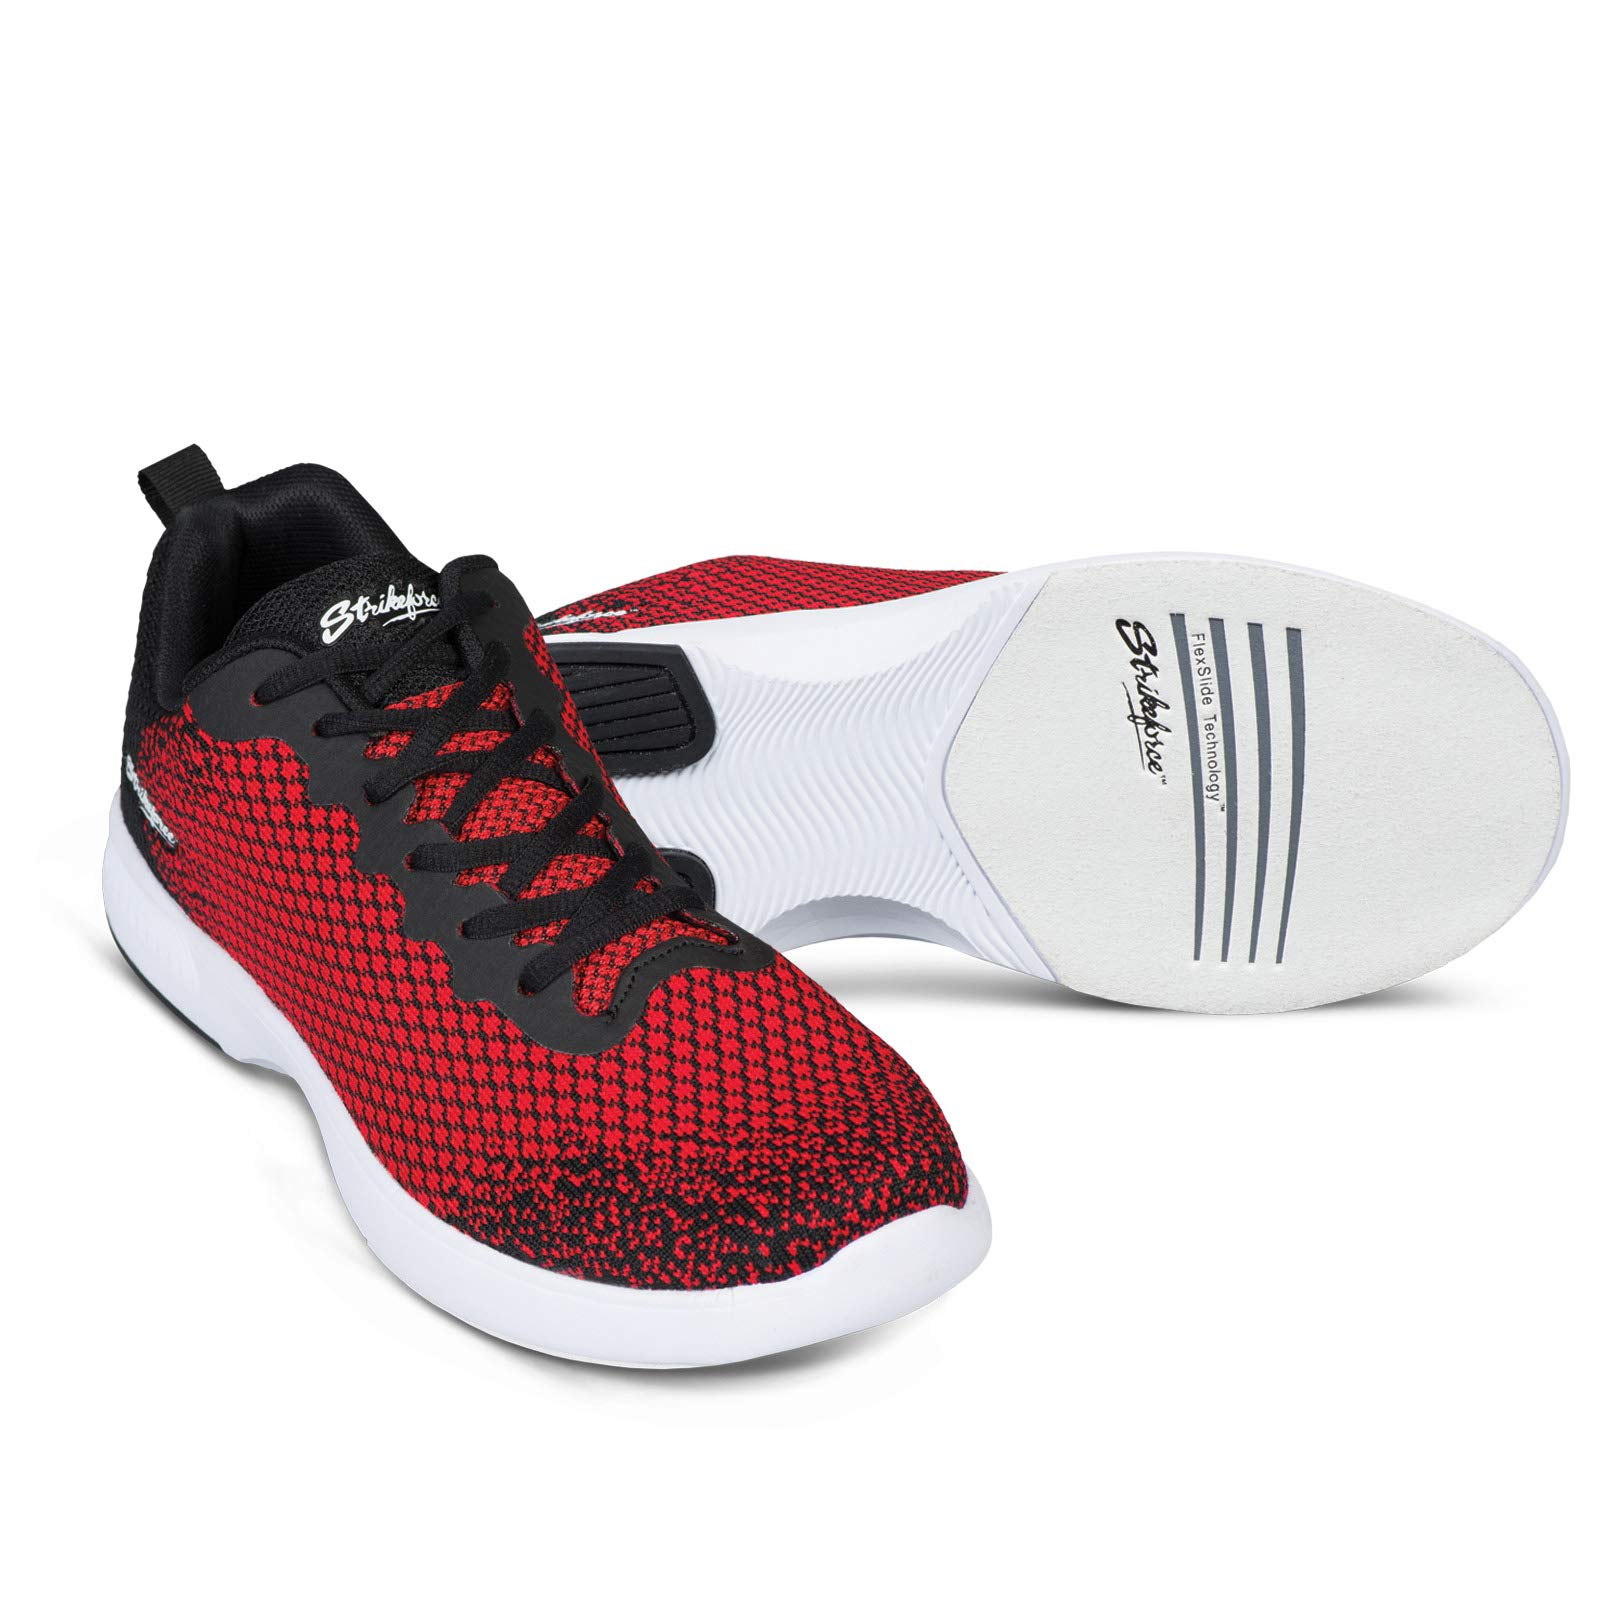 KR Aviator Mens Red/Blk Size 11.5 by KR Strikeforce